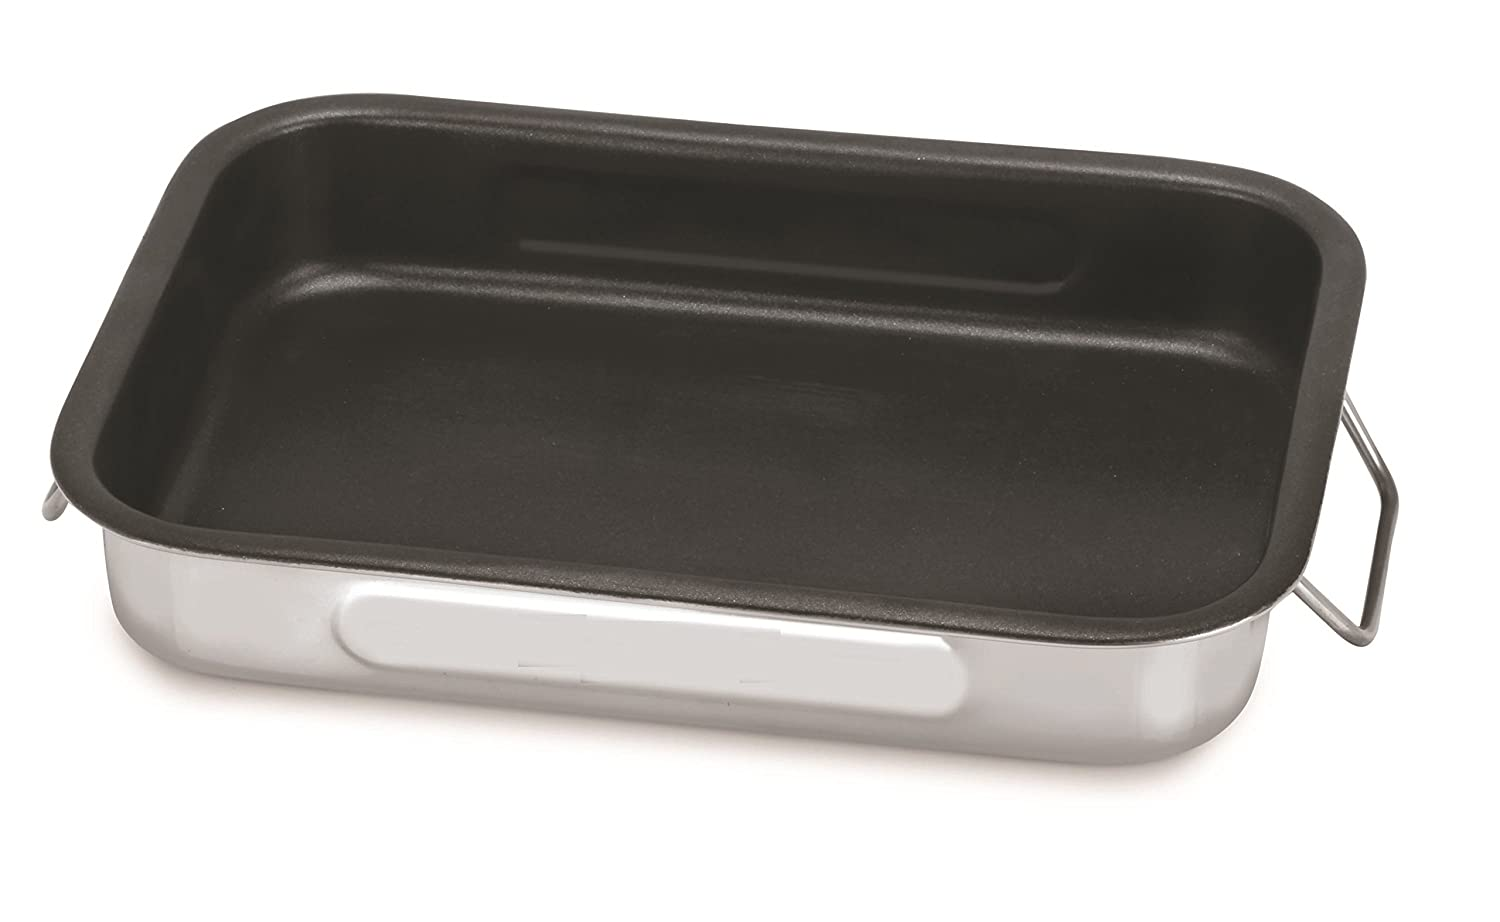 Chef Direct Stainless Steel Non Stick Roast Pan with Folding Handles //Rectangular Lasagna Pan for Baking, Grilling, Roasting // OTG Oven Safe (Length 35cm X Width 24cm)